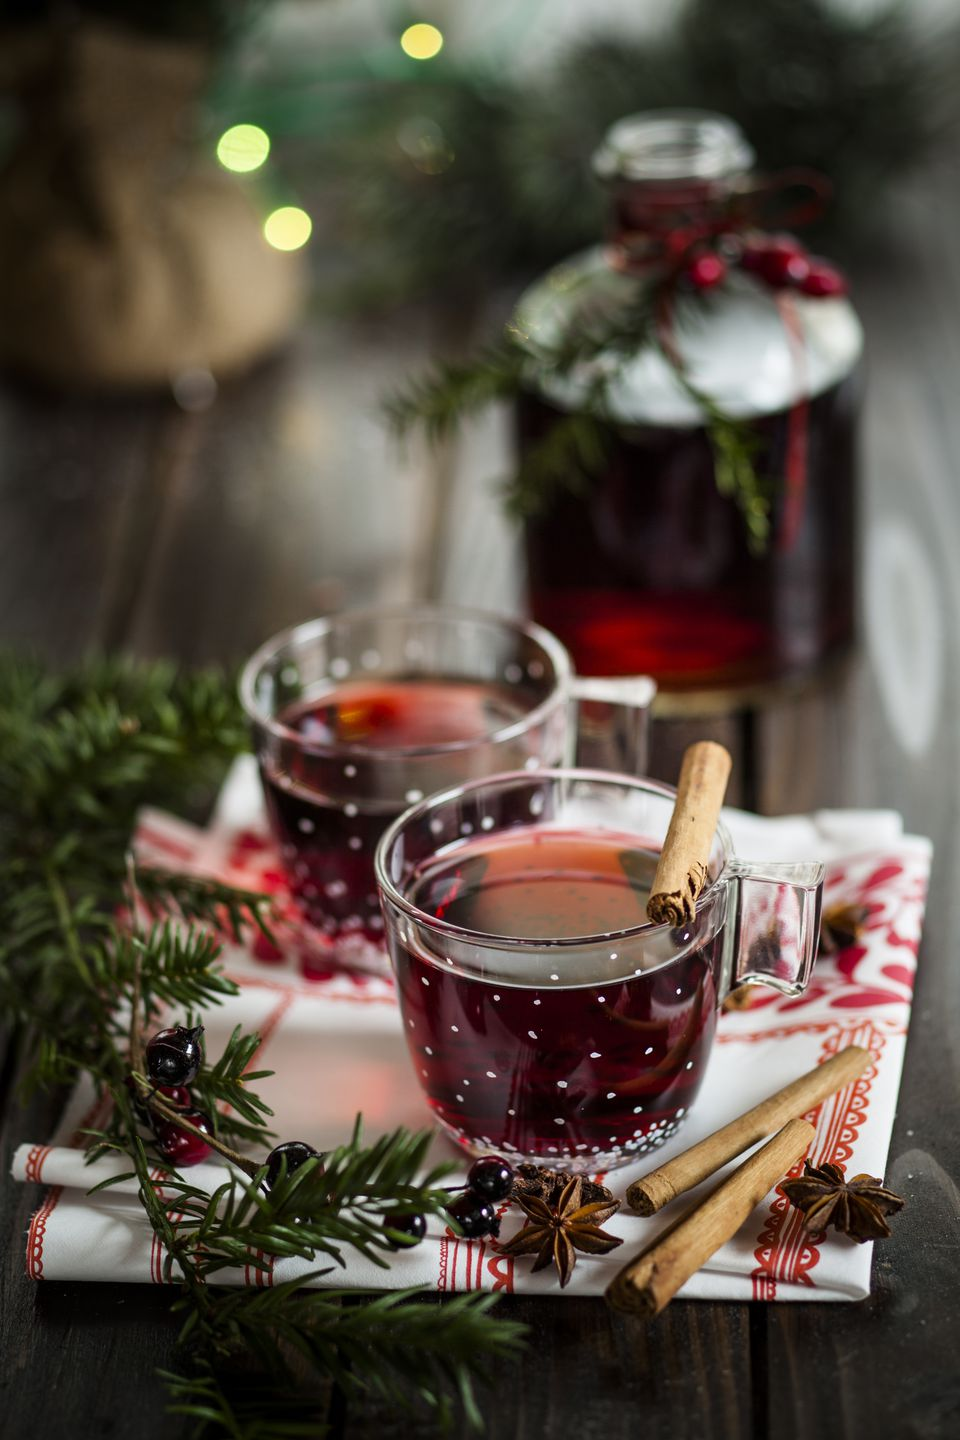 2 glasses of vin brule, Italian mulled wine